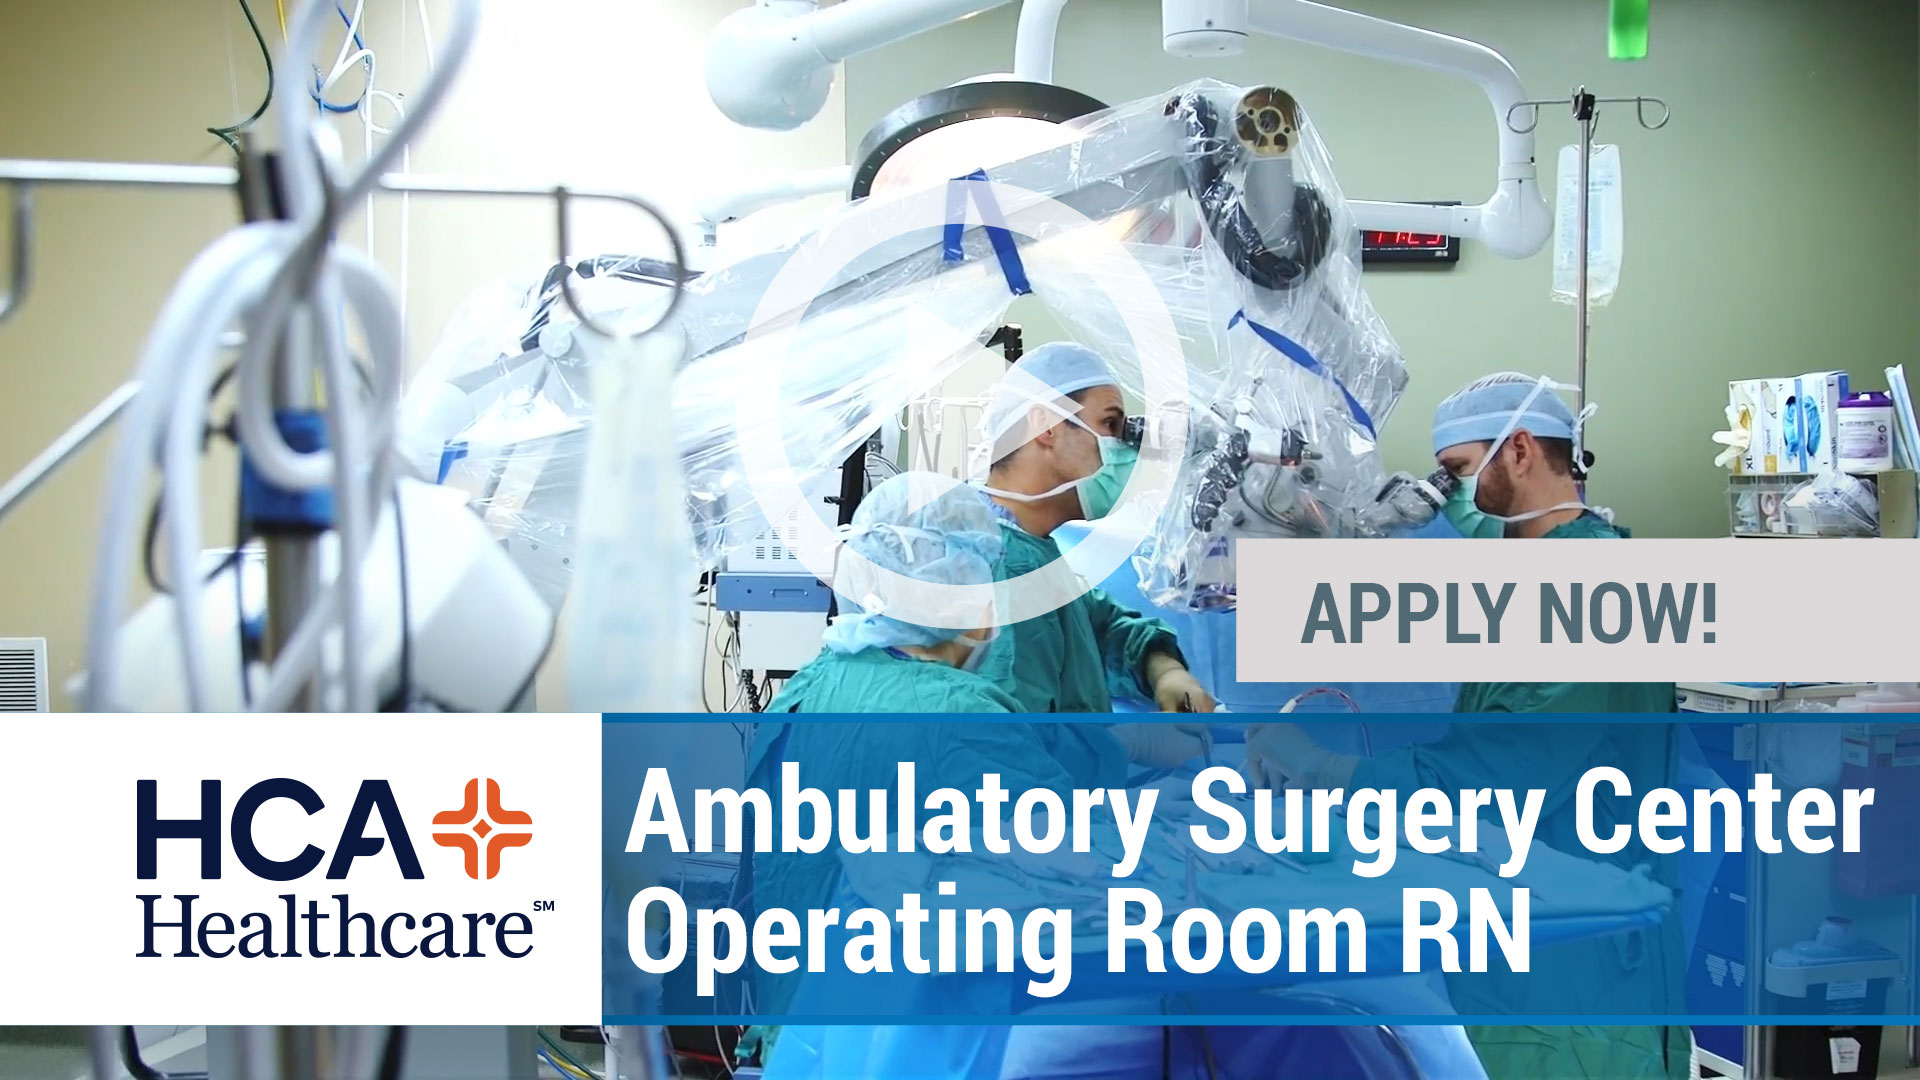 Watch our careers video for available job opening Ambulatory Surgery Center Operating Room RN in Marietta, Georgia